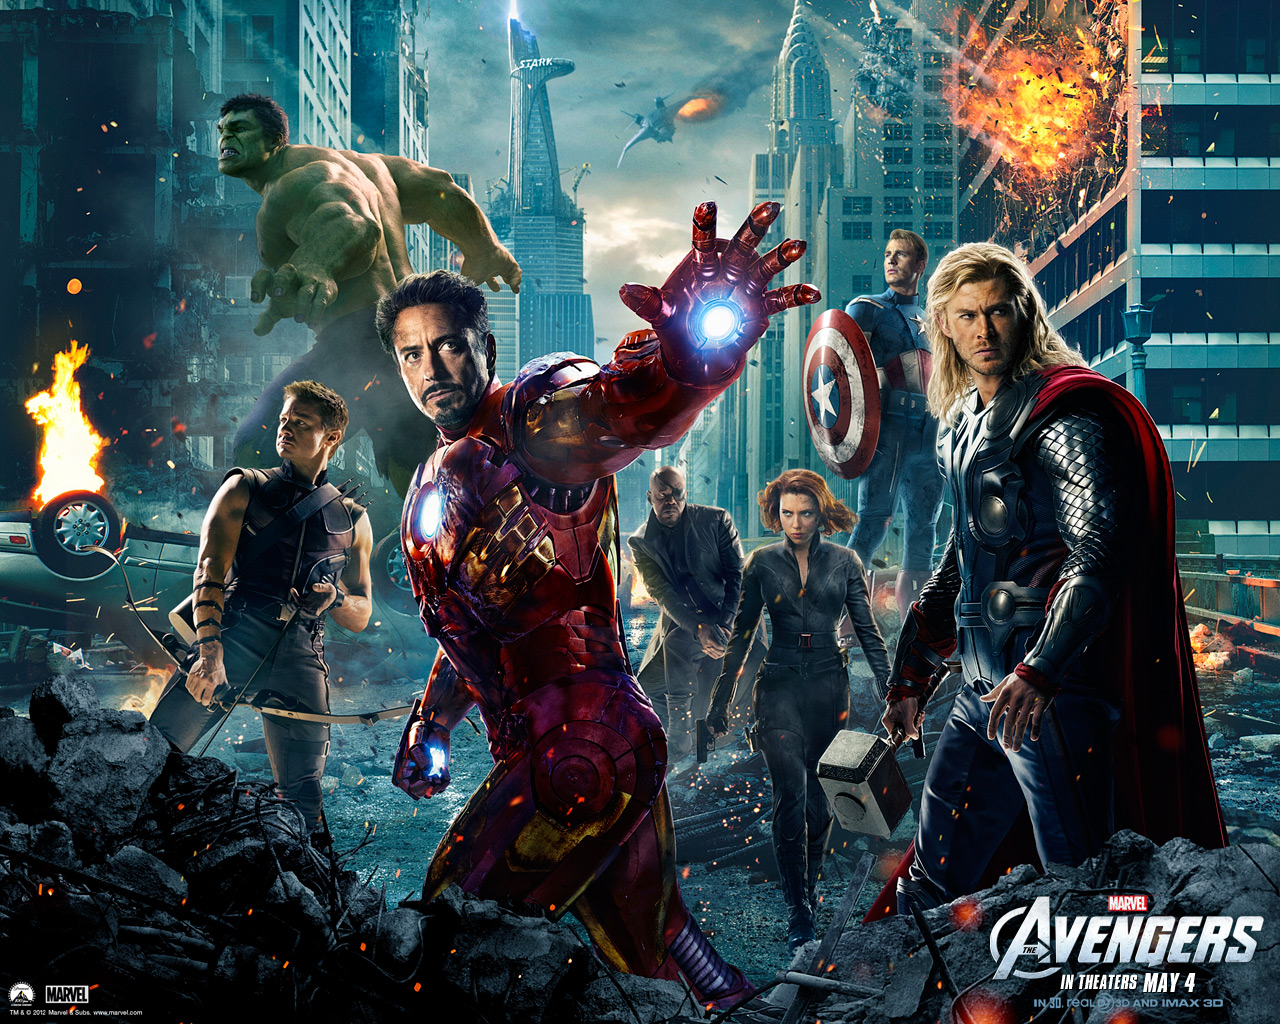 VIZIO BLOG: THE AVENGERS MARVEL 2012 MOVIE WALLPAPERS (LOS VENGADORES)